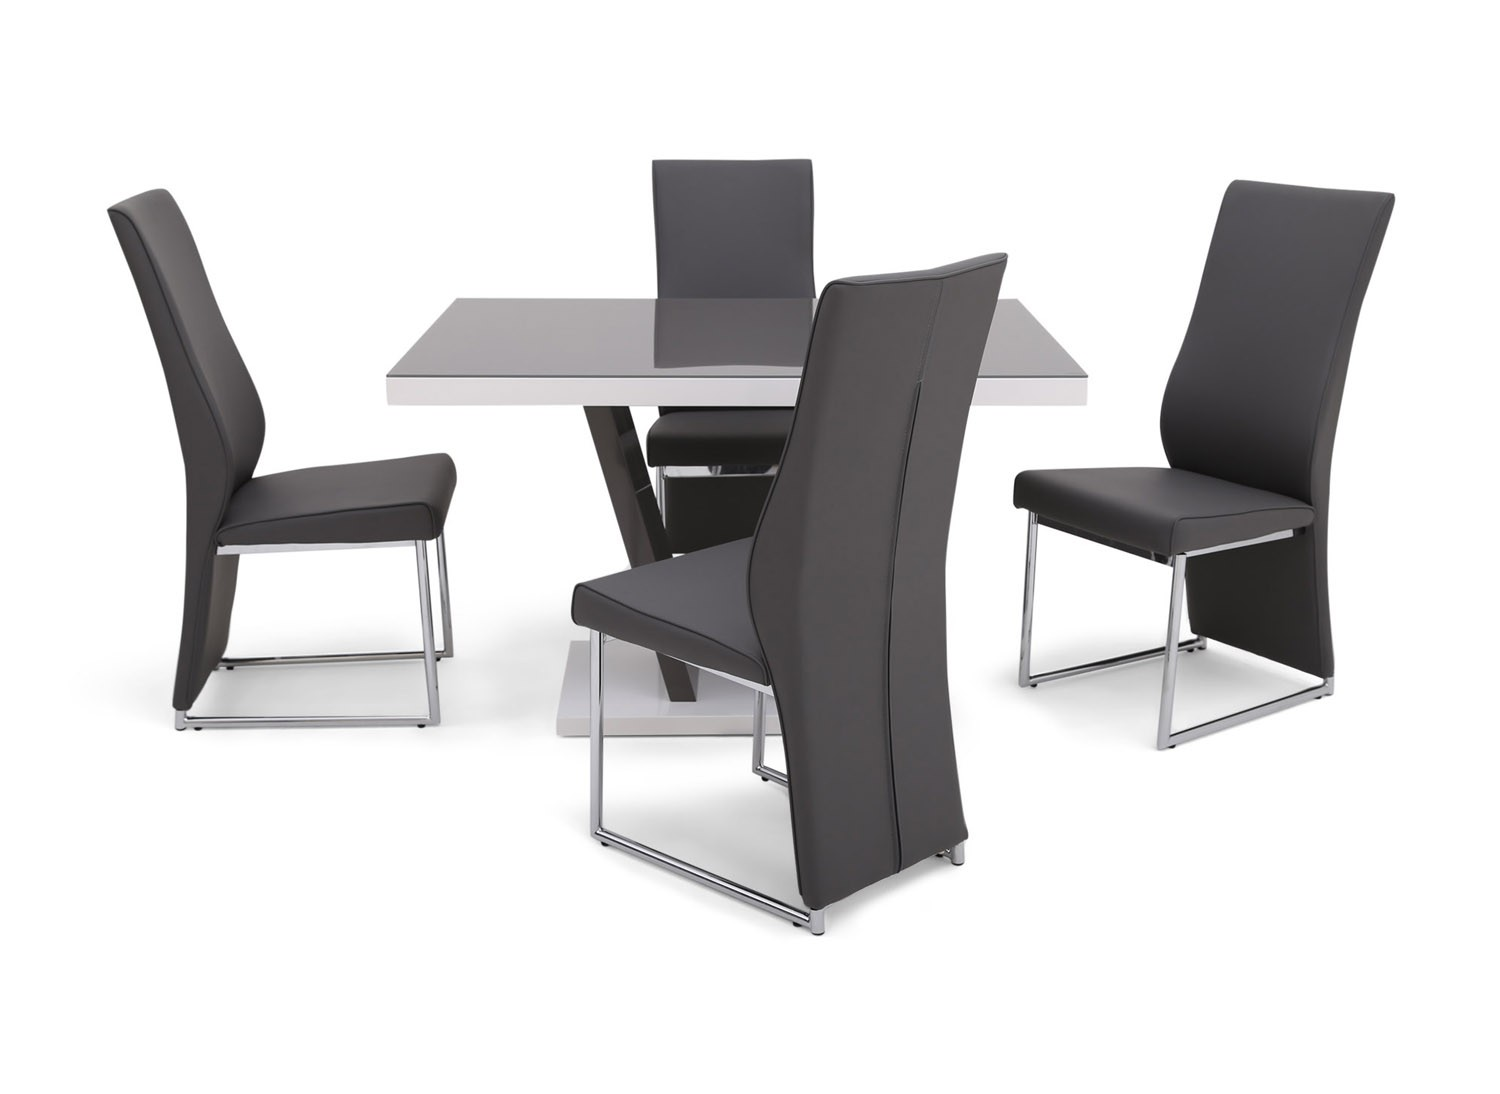 https://www.firstfurniture.co.uk/pub/media/catalog/product/f/a/fairmont_valentino_grey_high_gloss_dining_table_4_remo_black_chairs_2.jpg